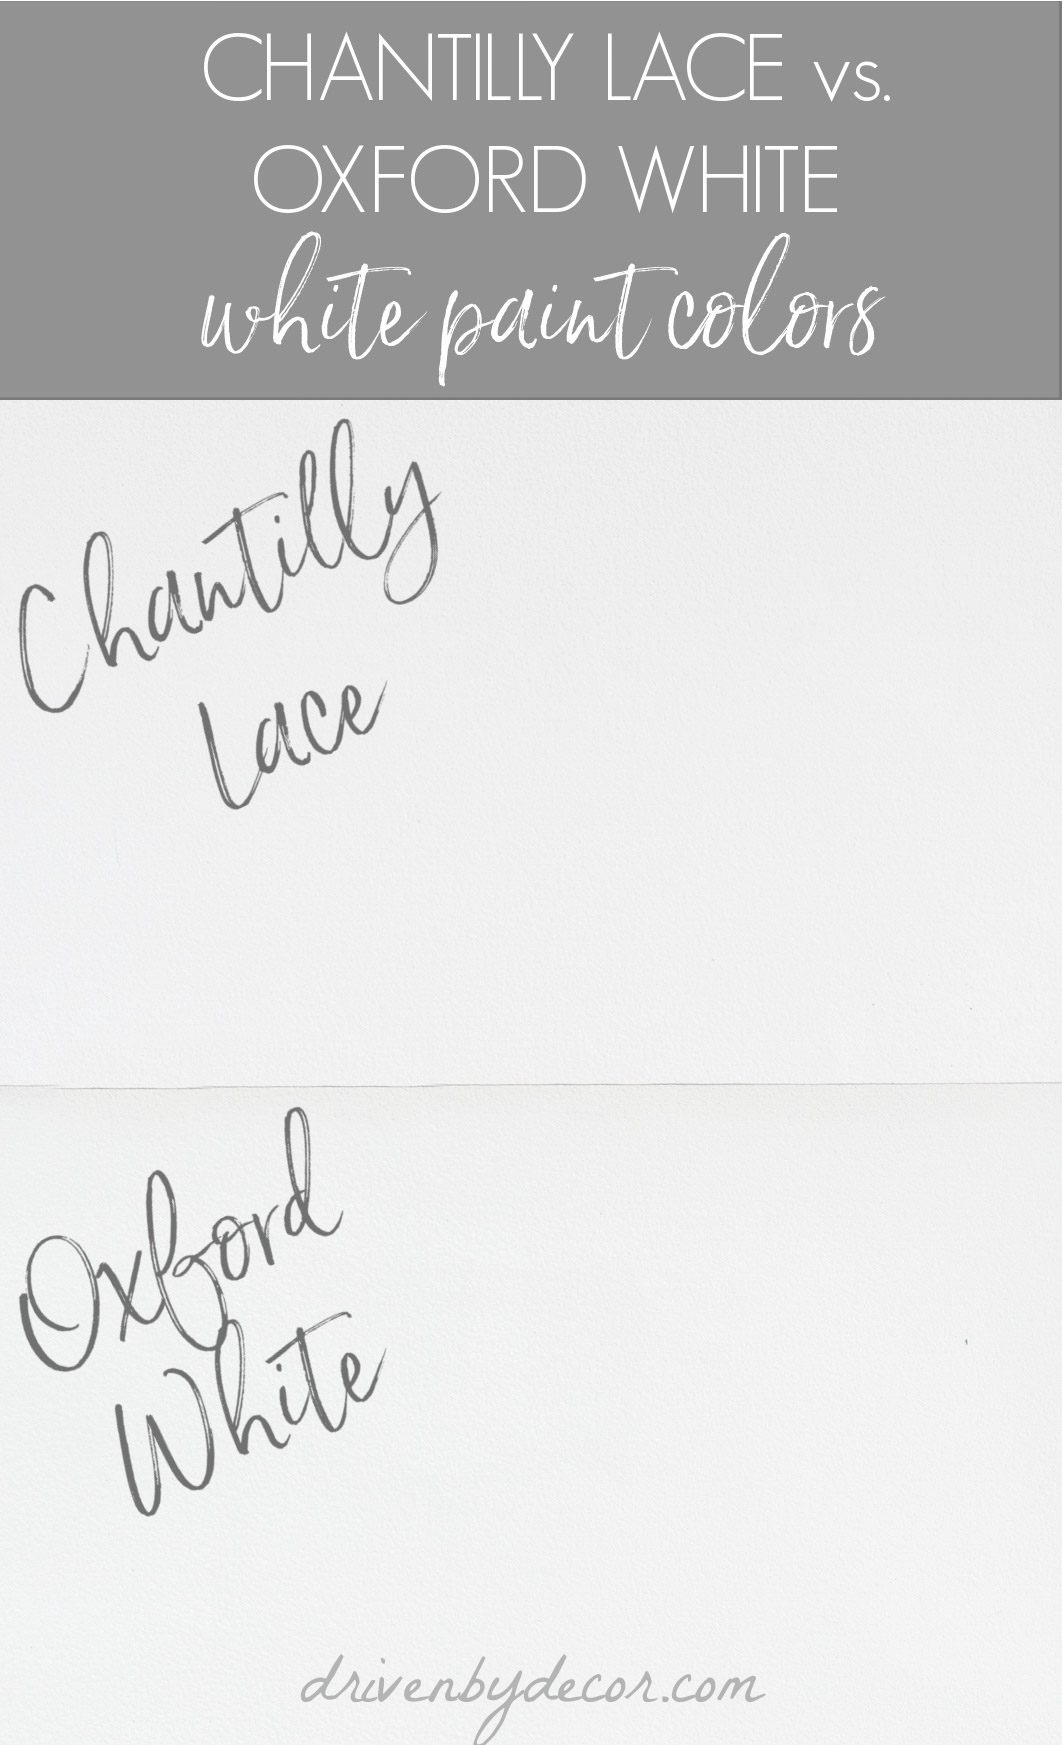 Benjamin Moore Oxford White versus Chantilly Lace paint colors